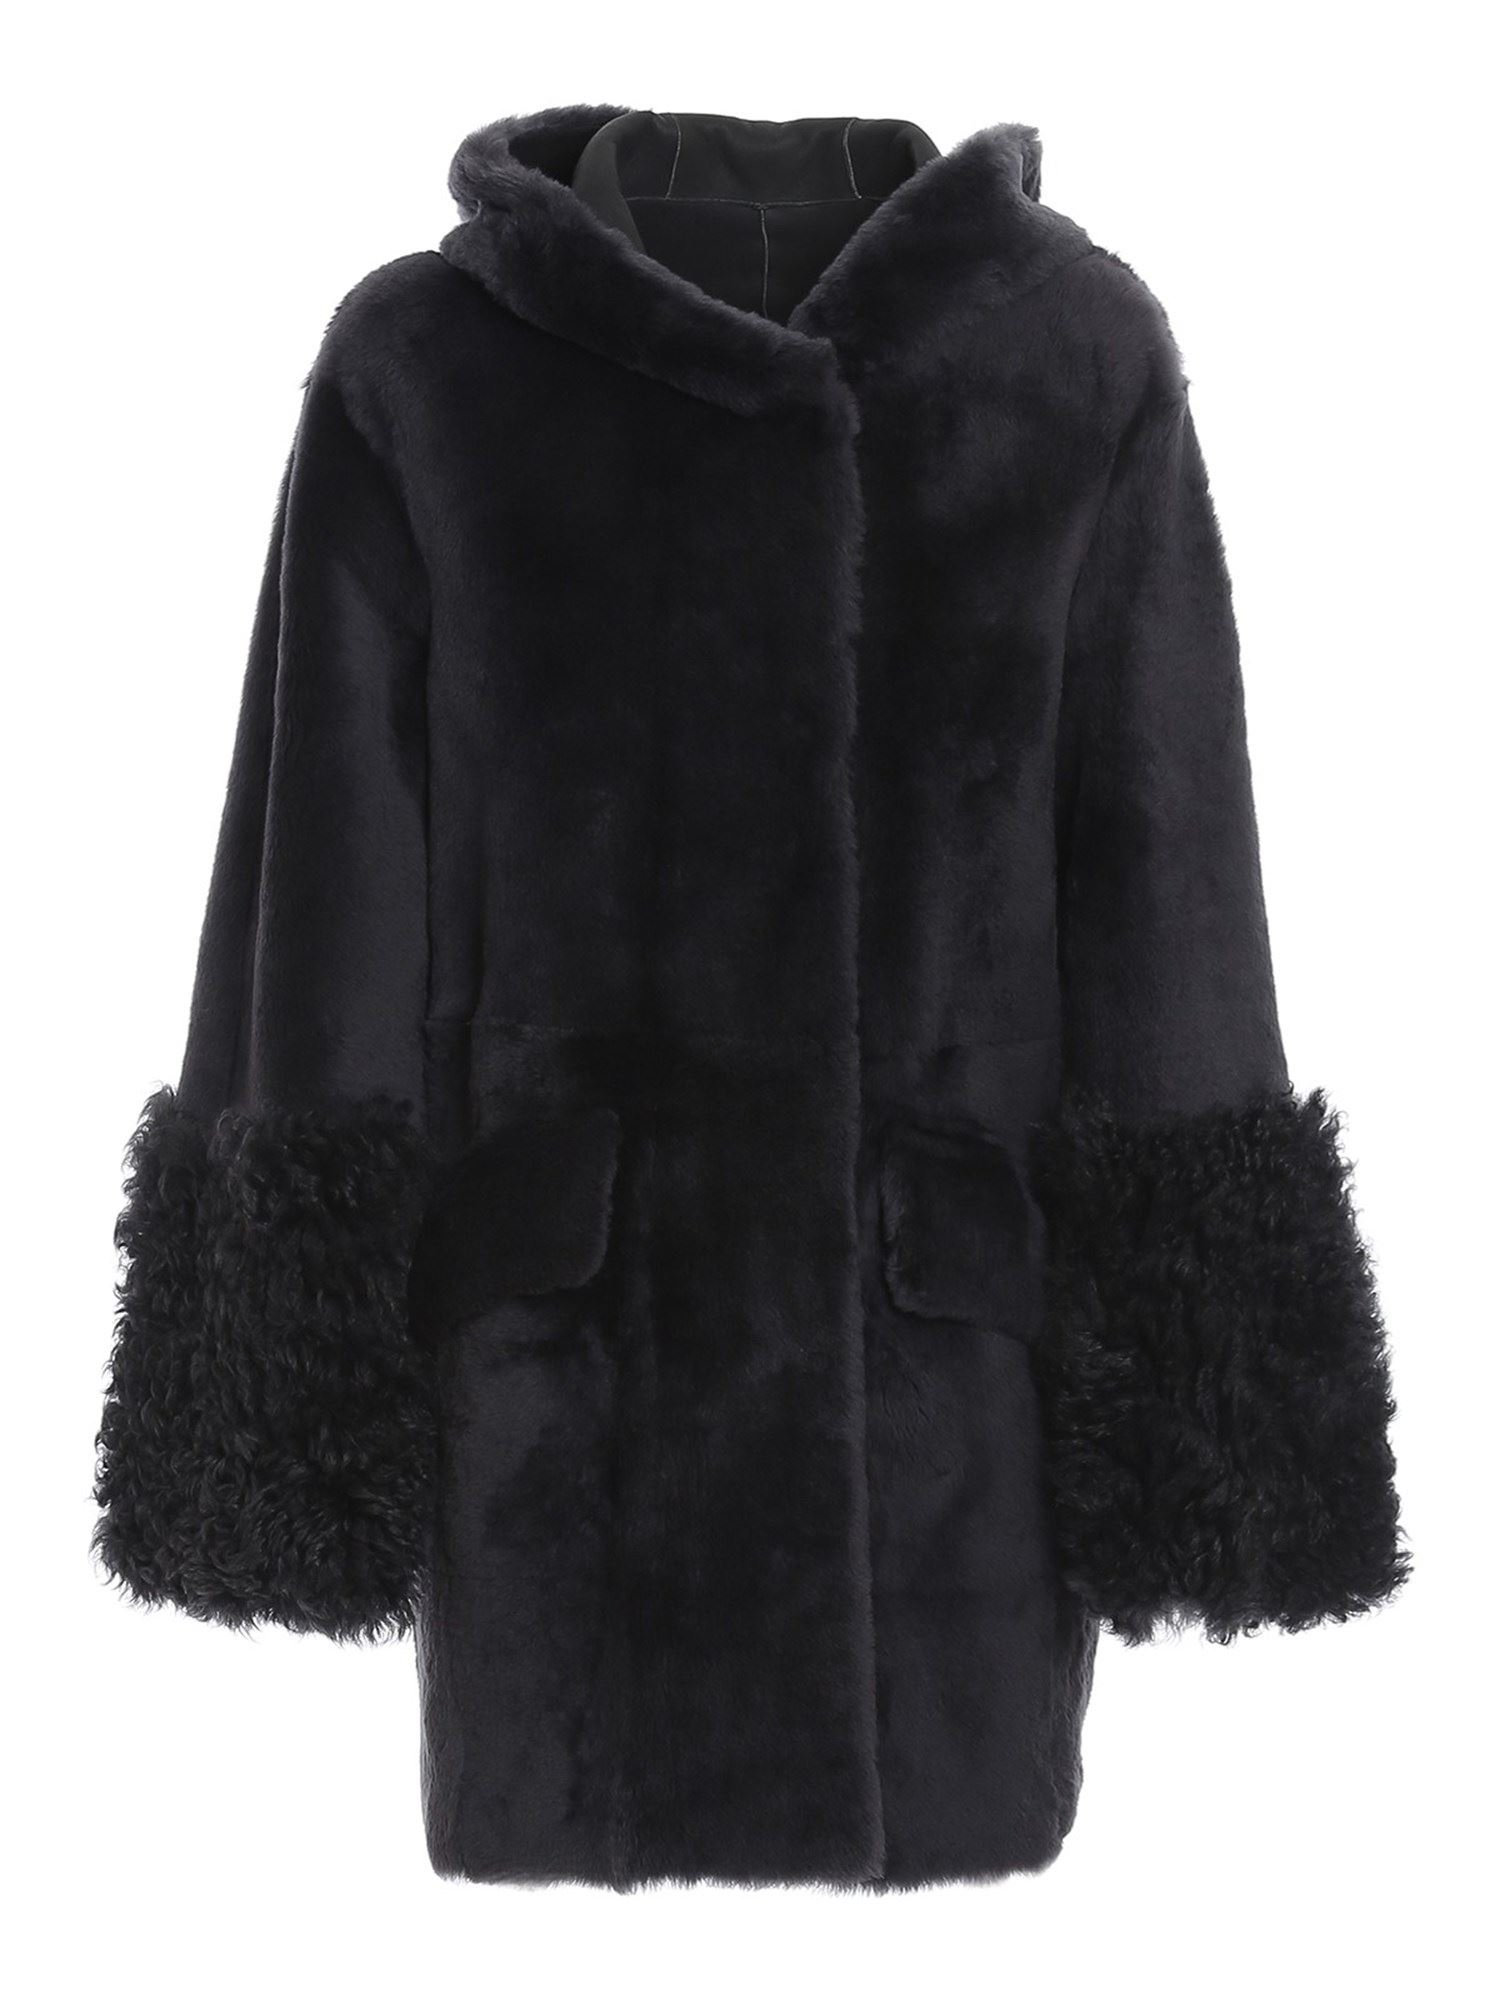 Drome REVERSIBLE SHEARLING HOODED COAT